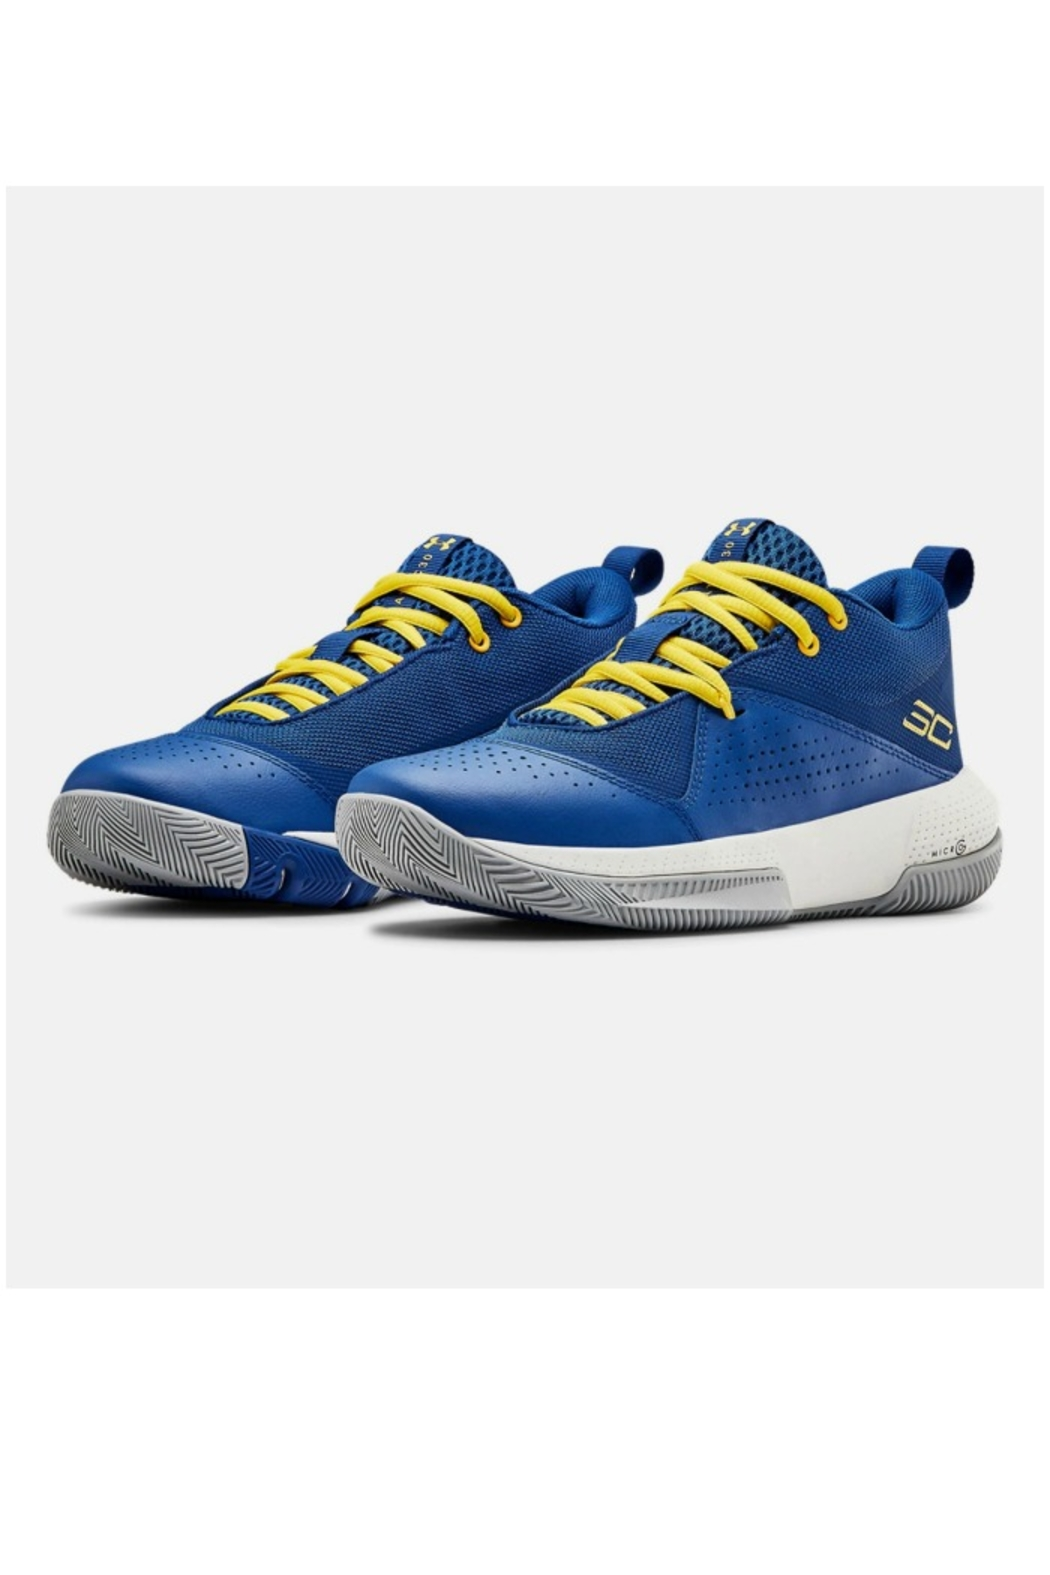 Under Armour SC 3Zero IV - Back Cropped Image